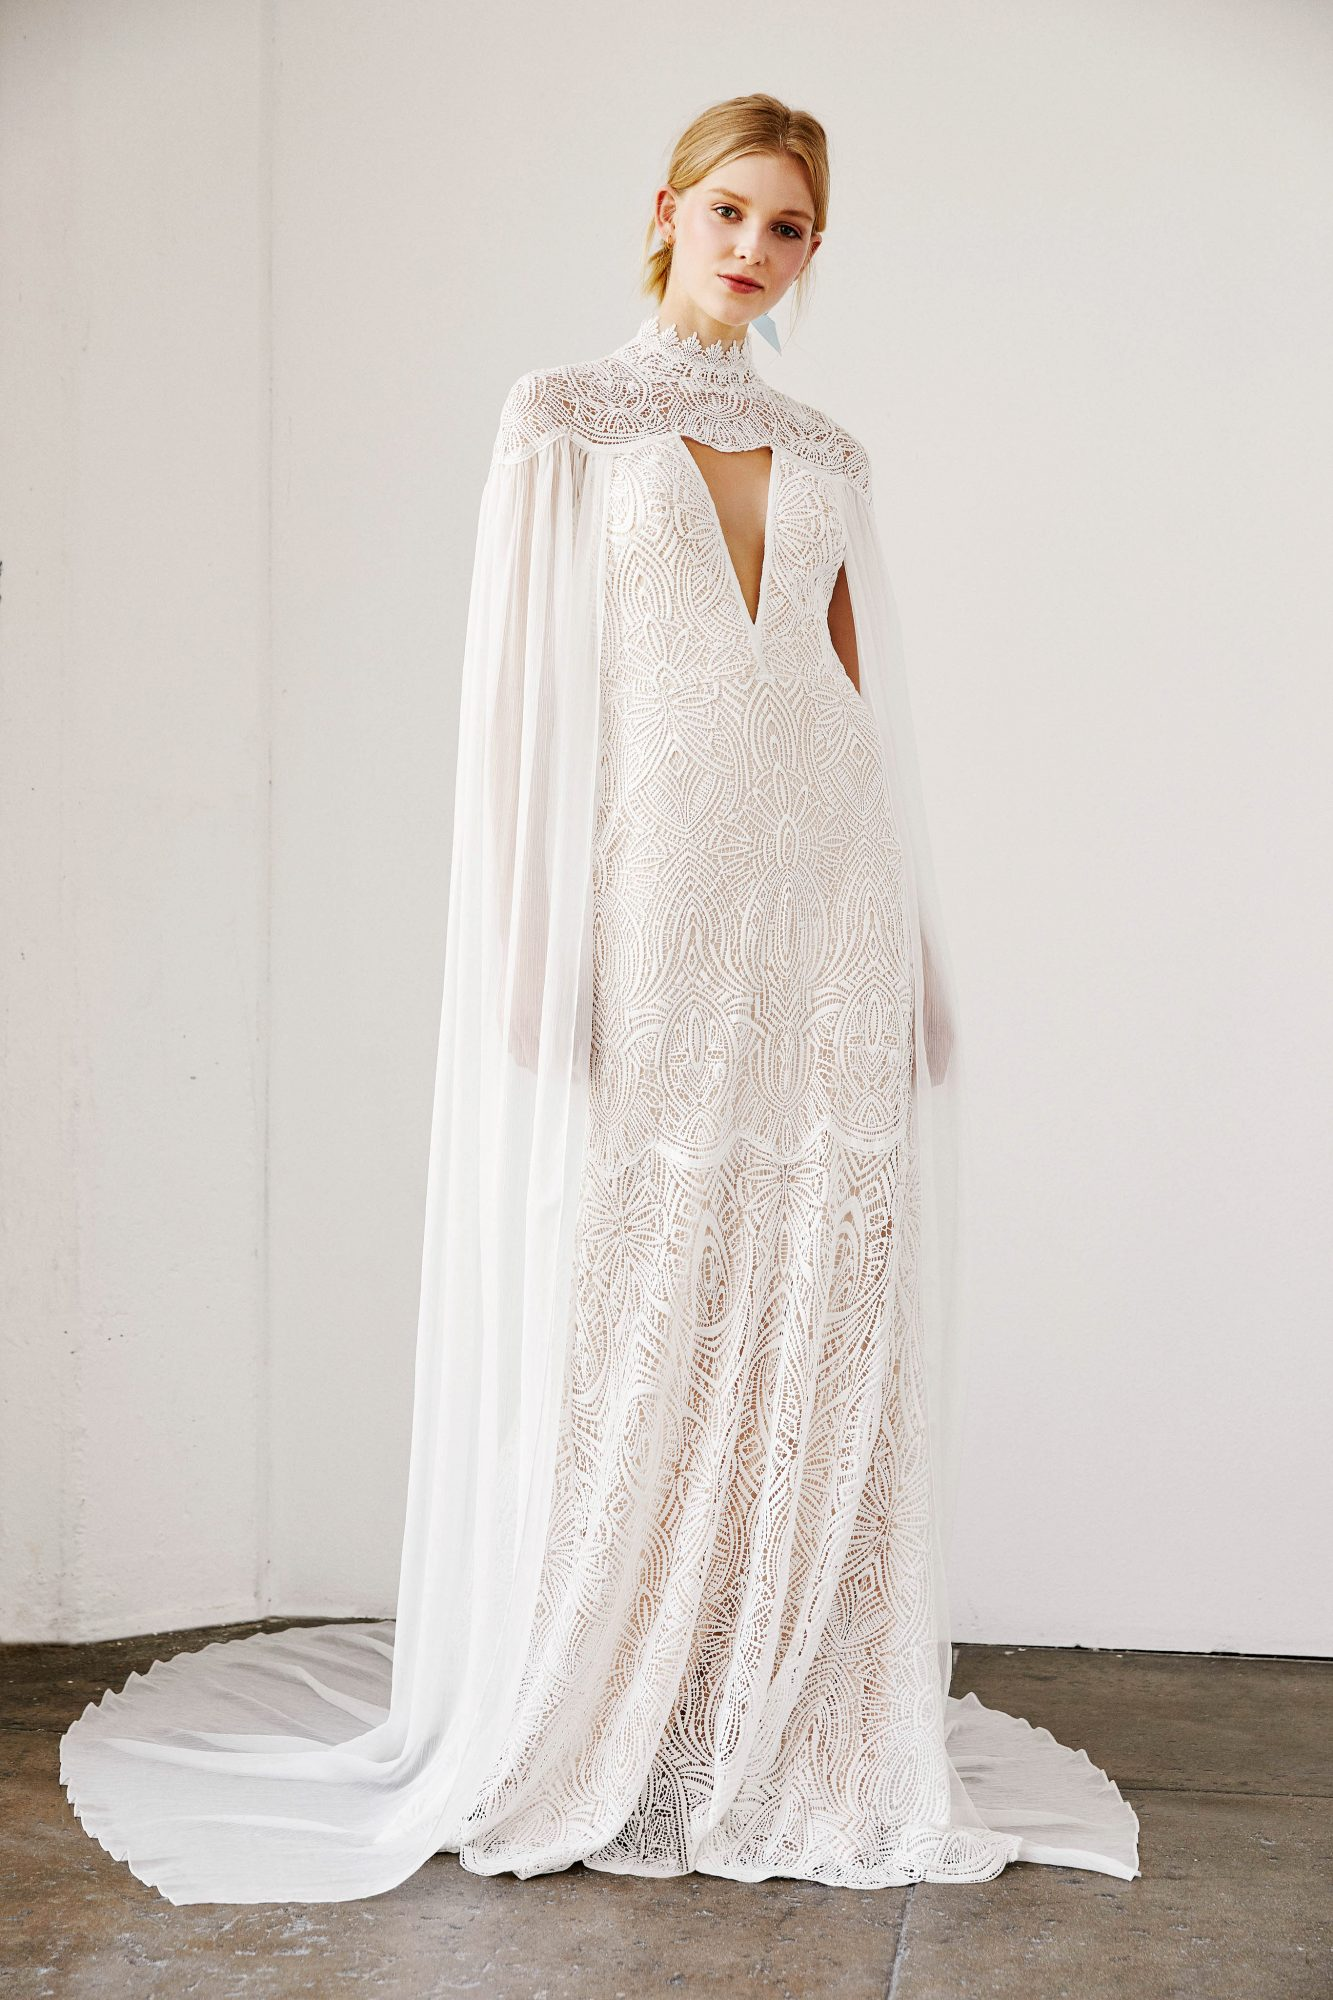 tadashi shoji wedding dress spring 2019 cutout cape sheath